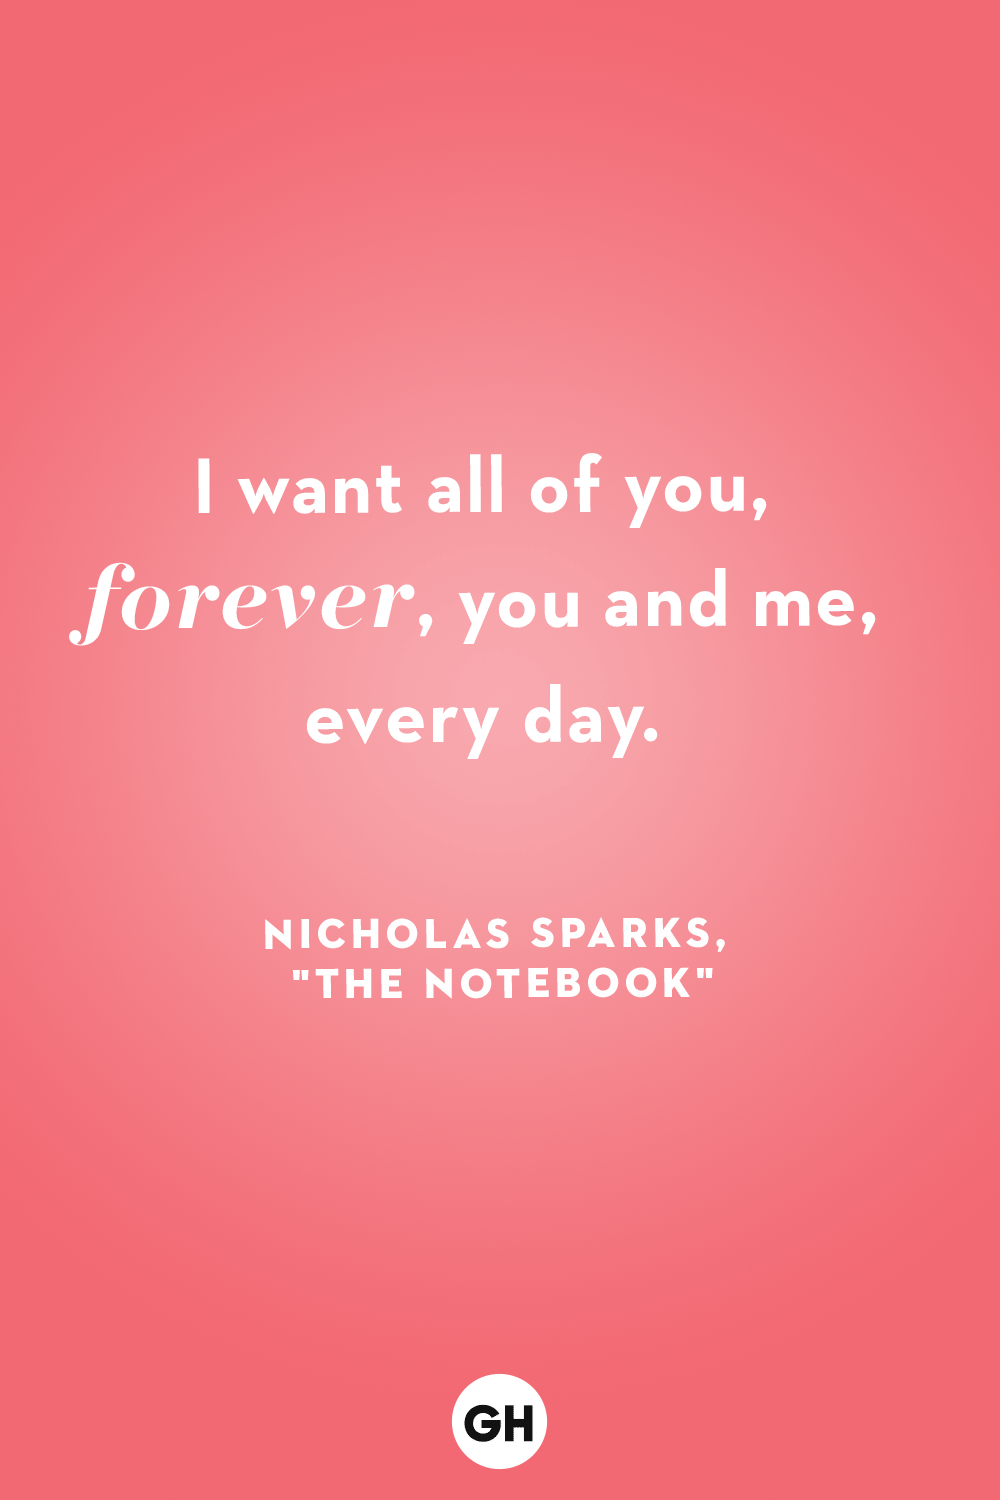 gh love quotes nicholas sparks the notebook